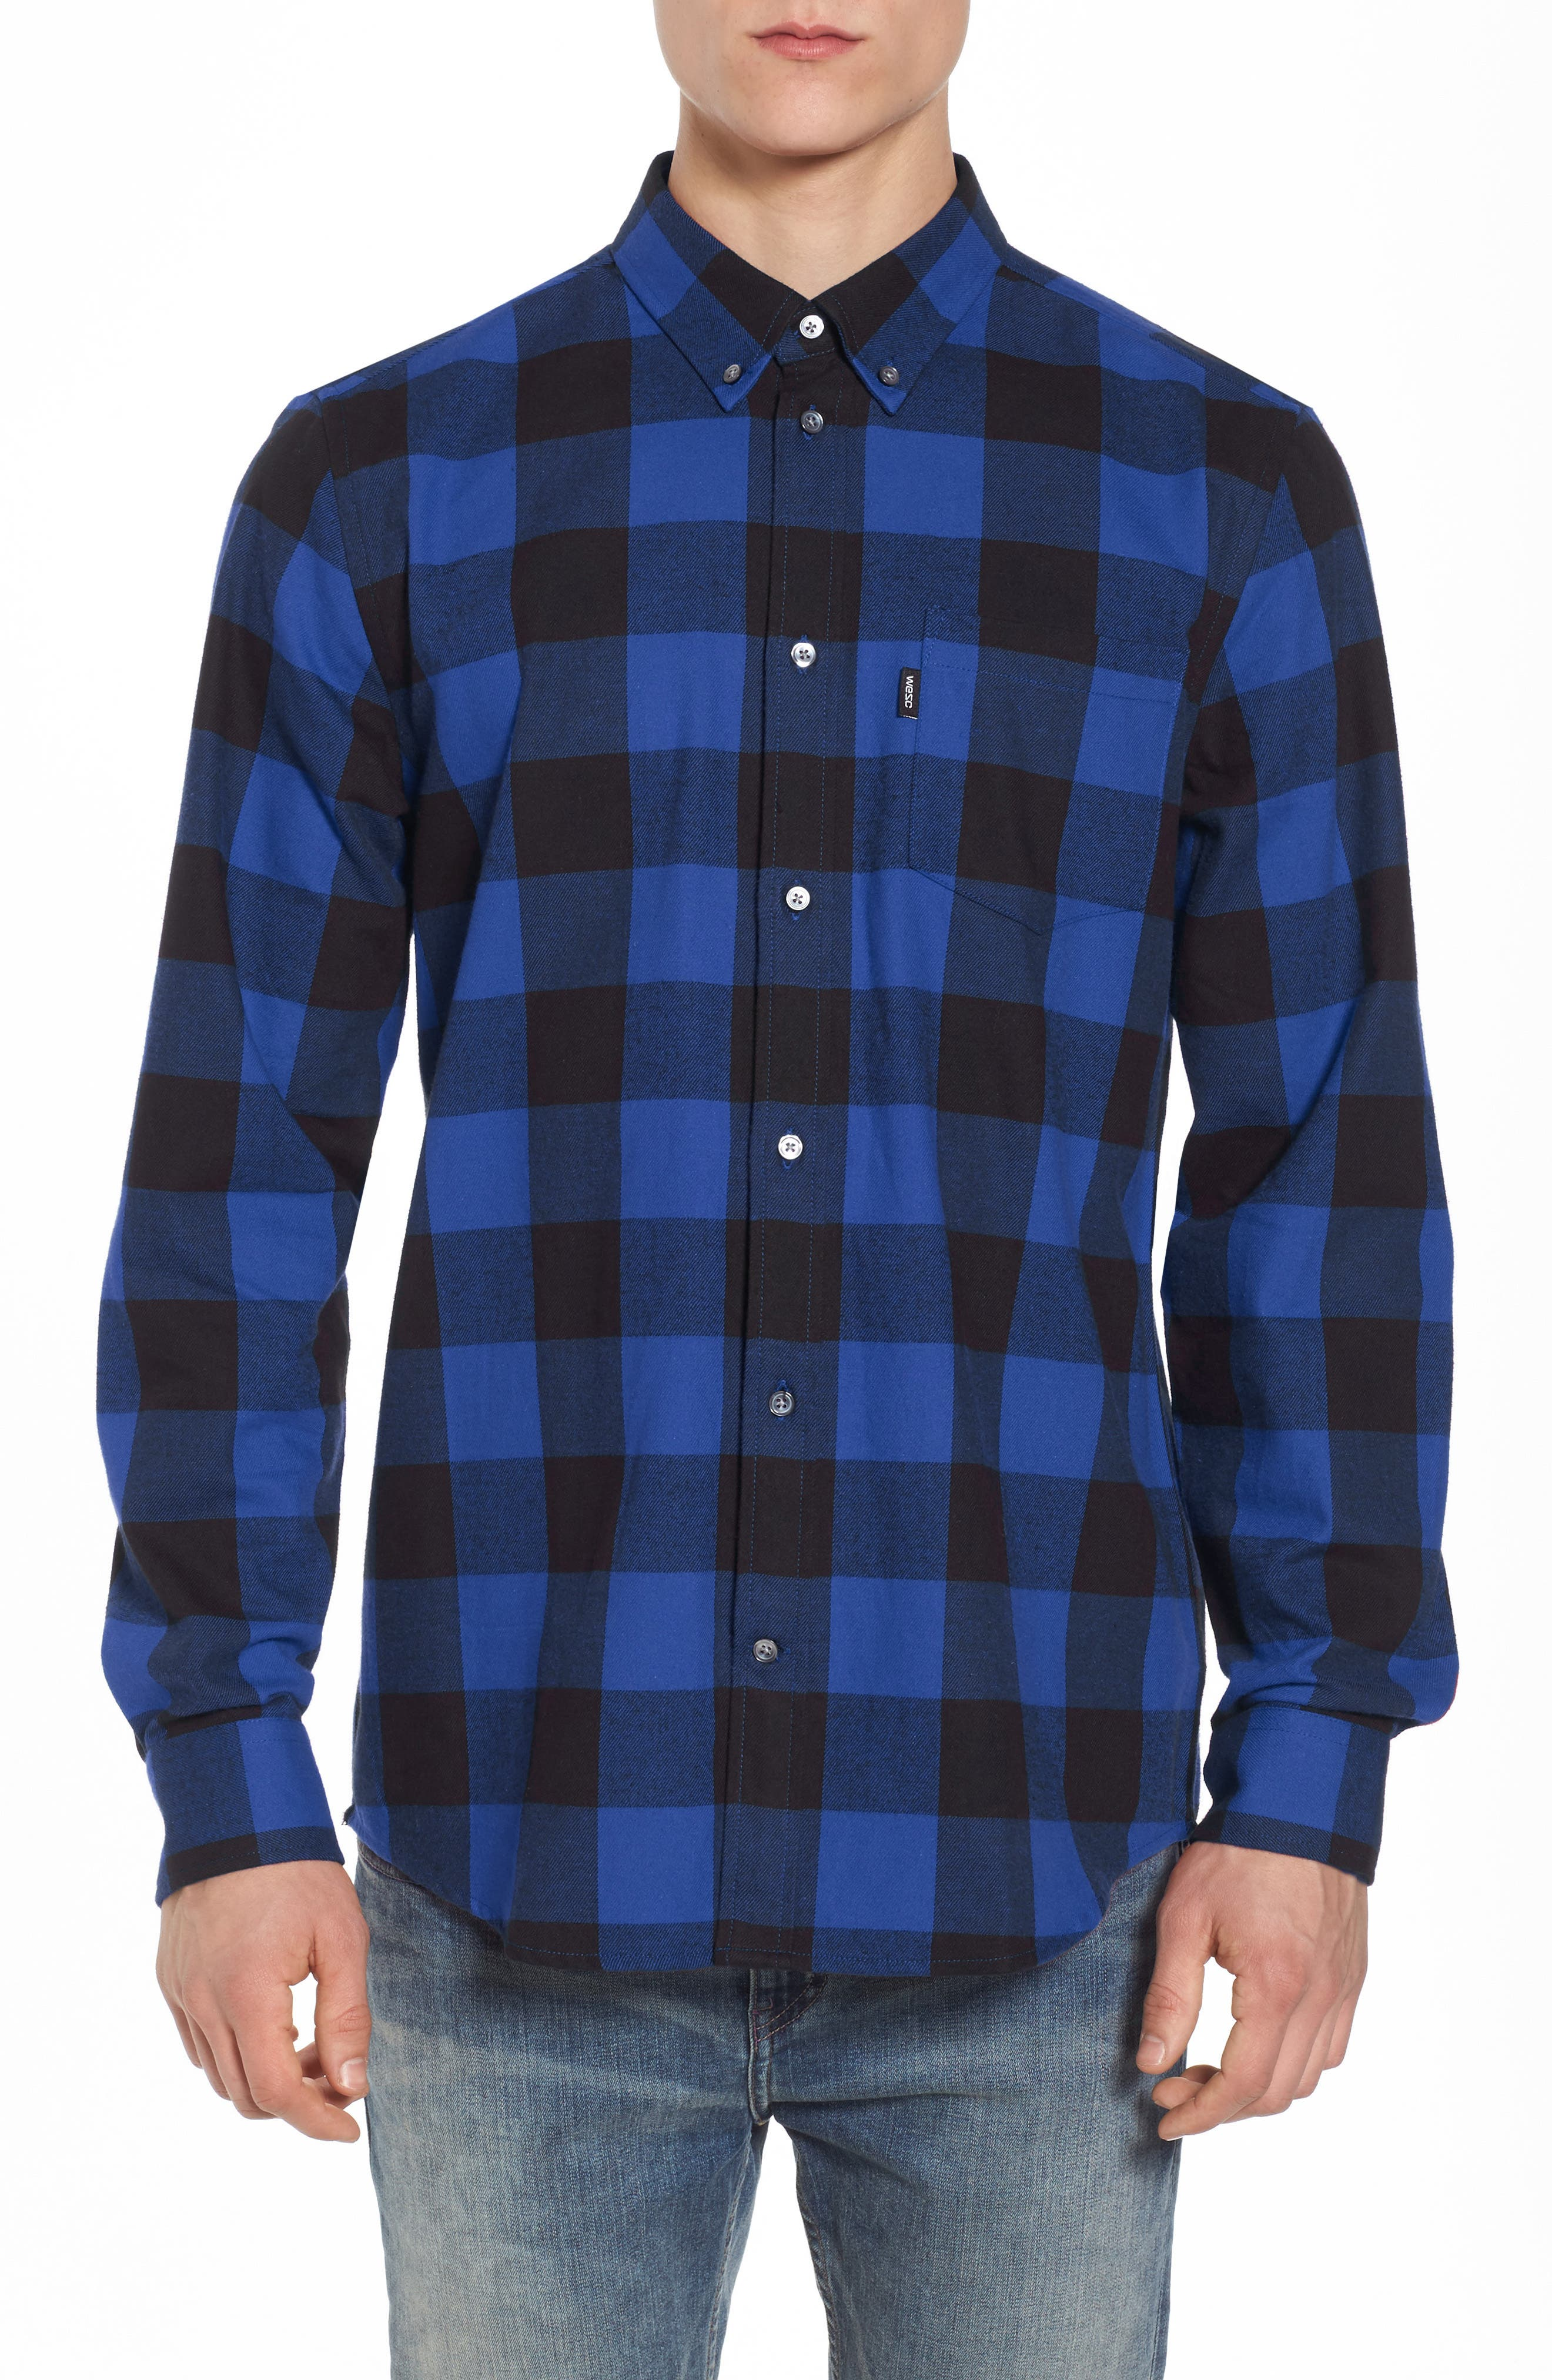 Main Image - WeSC Olavi Check Flannel Shirt